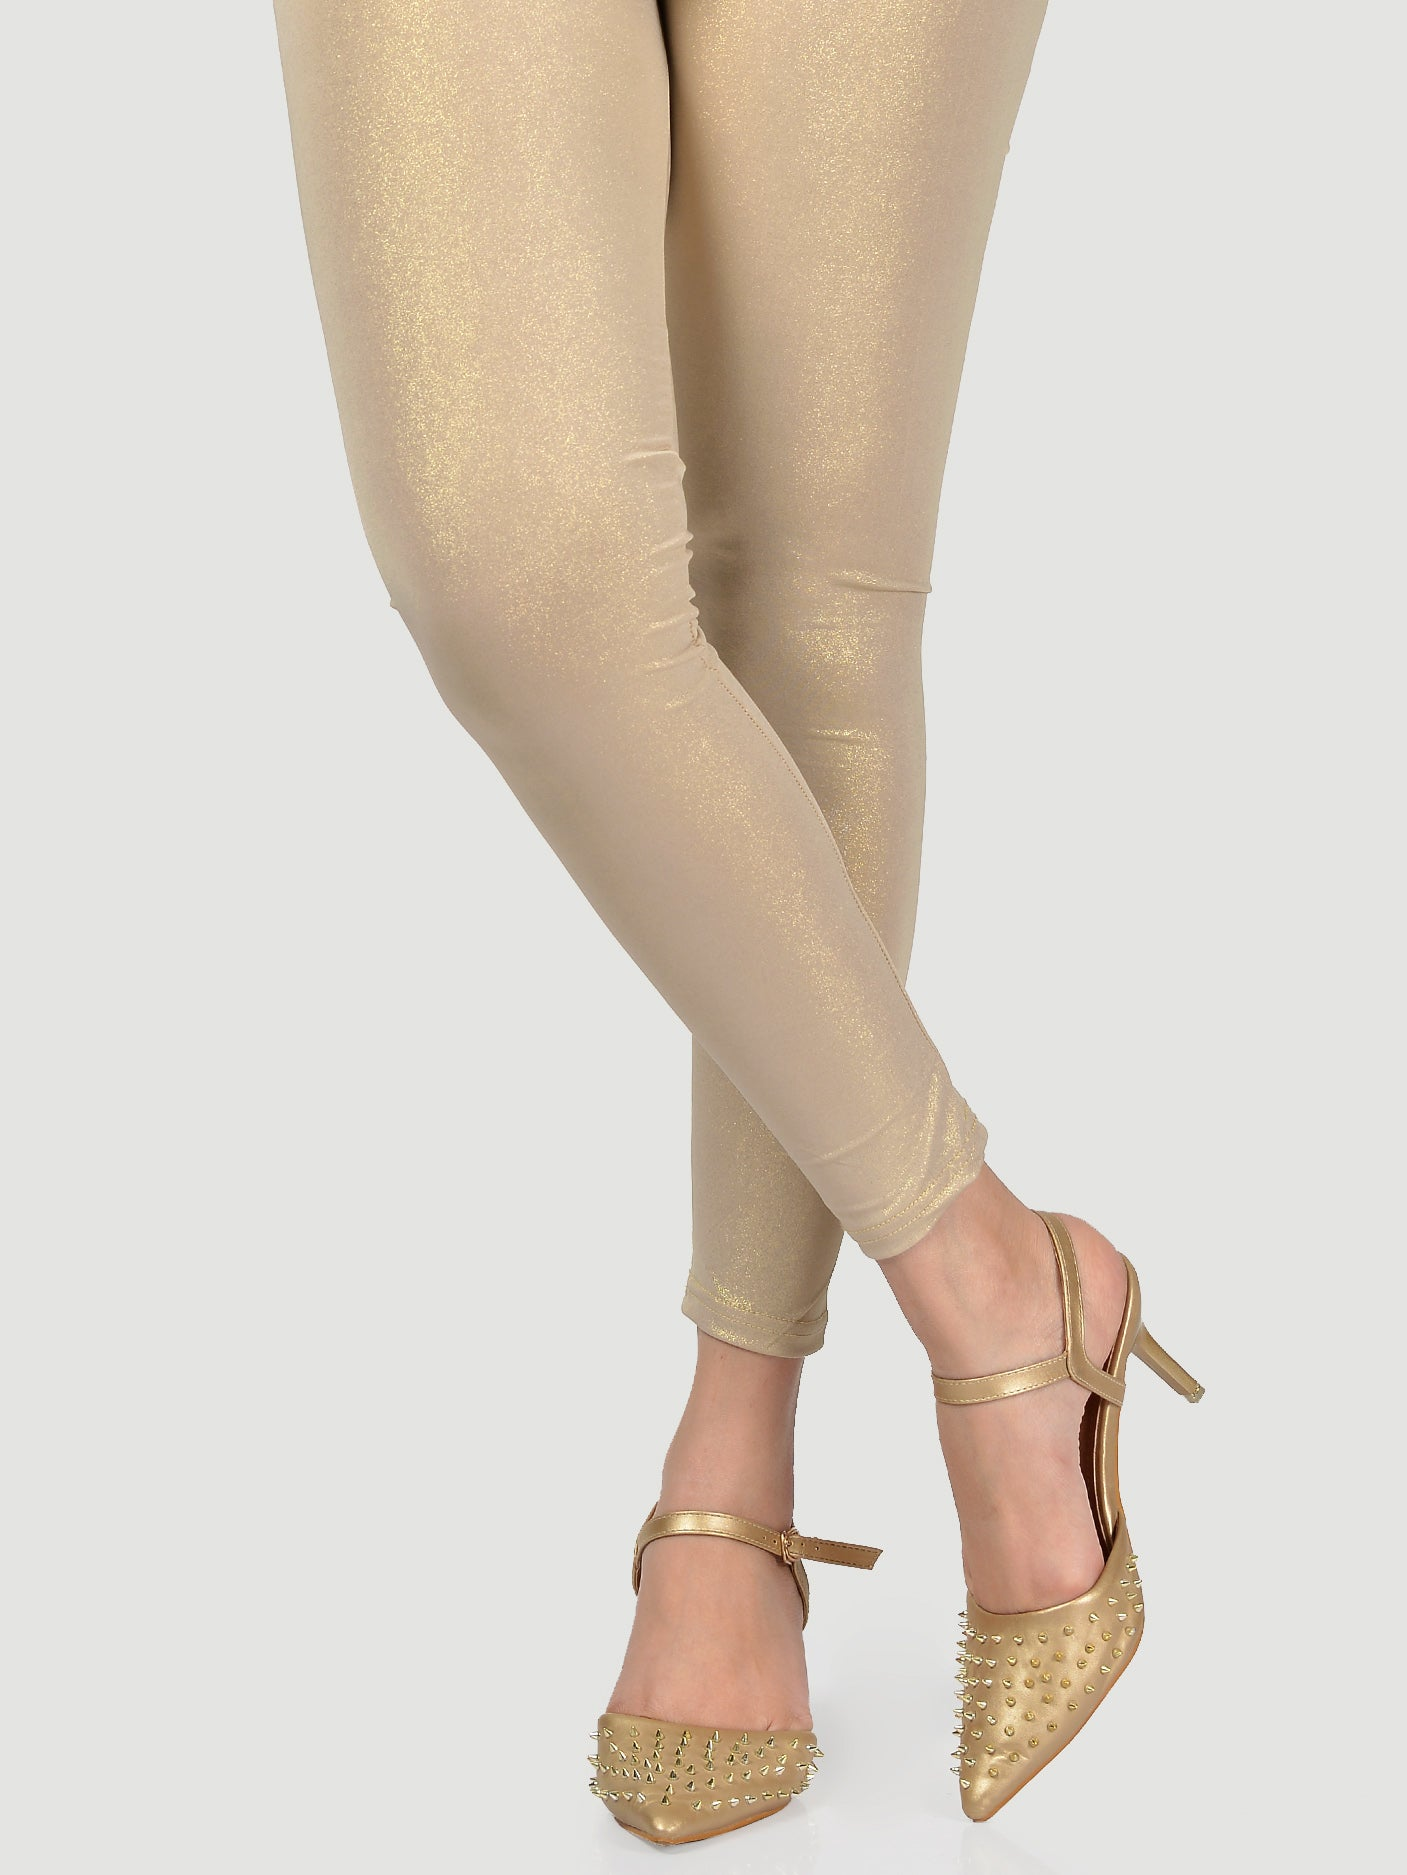 Shimmer Tights - Medium Gold